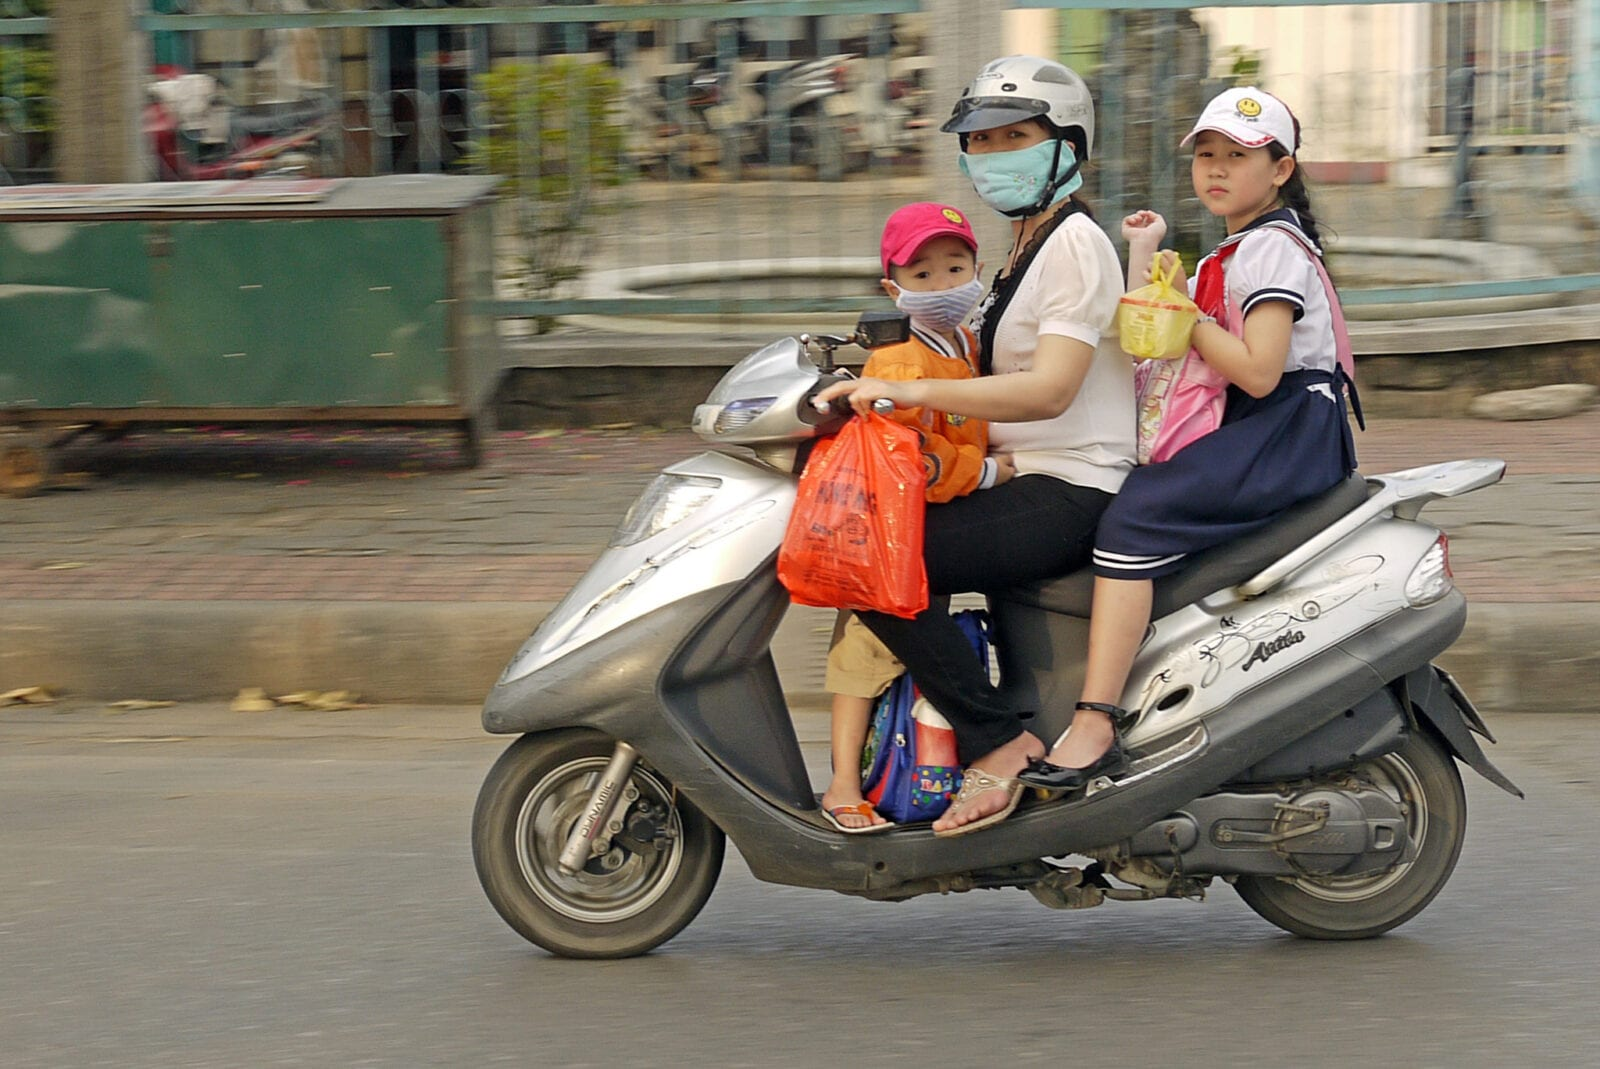 Image of a mother and her children riding on a motorbike